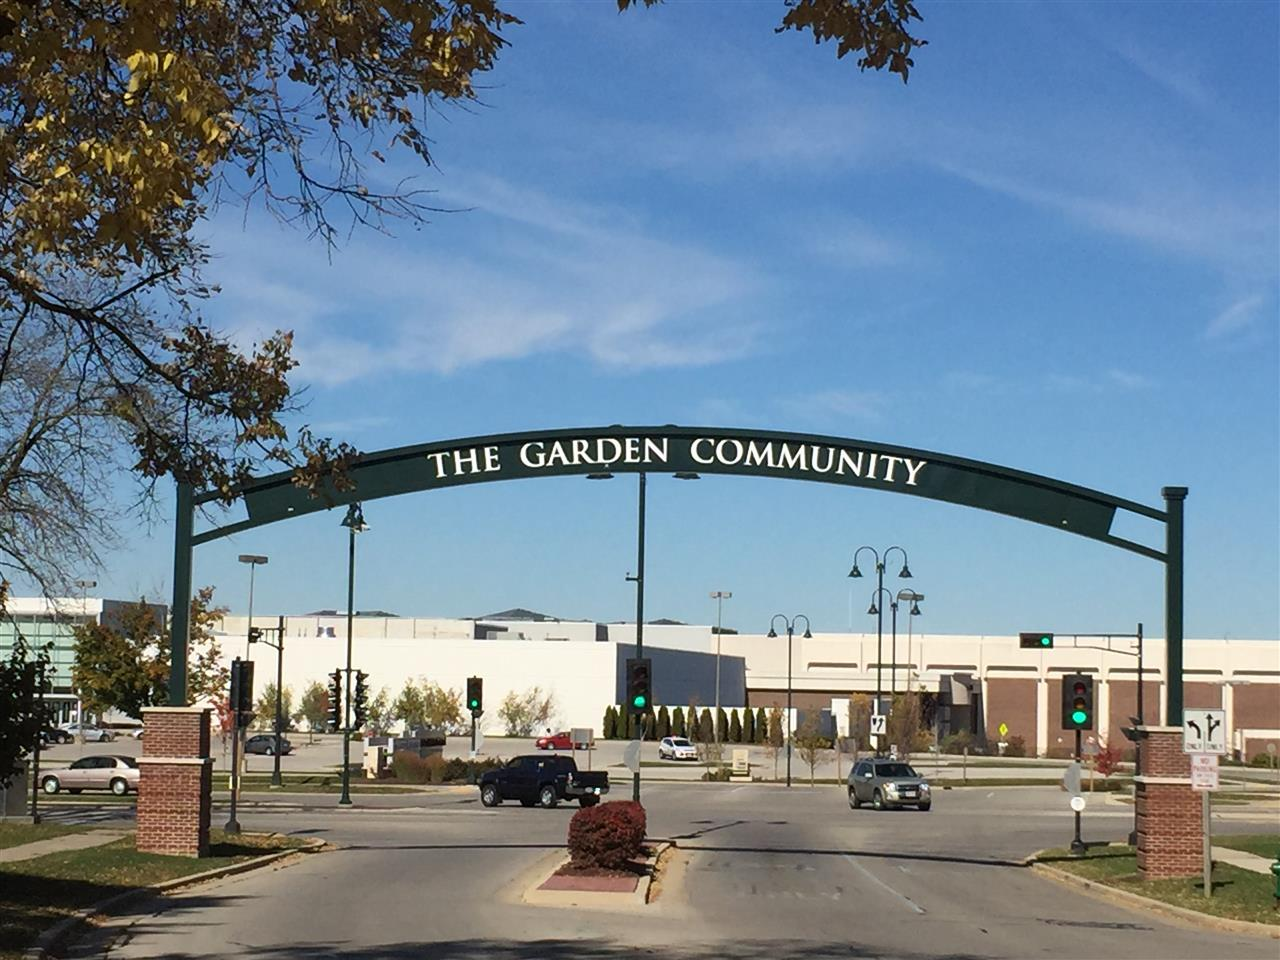 Village of Greendale, WI known at the Garden Community